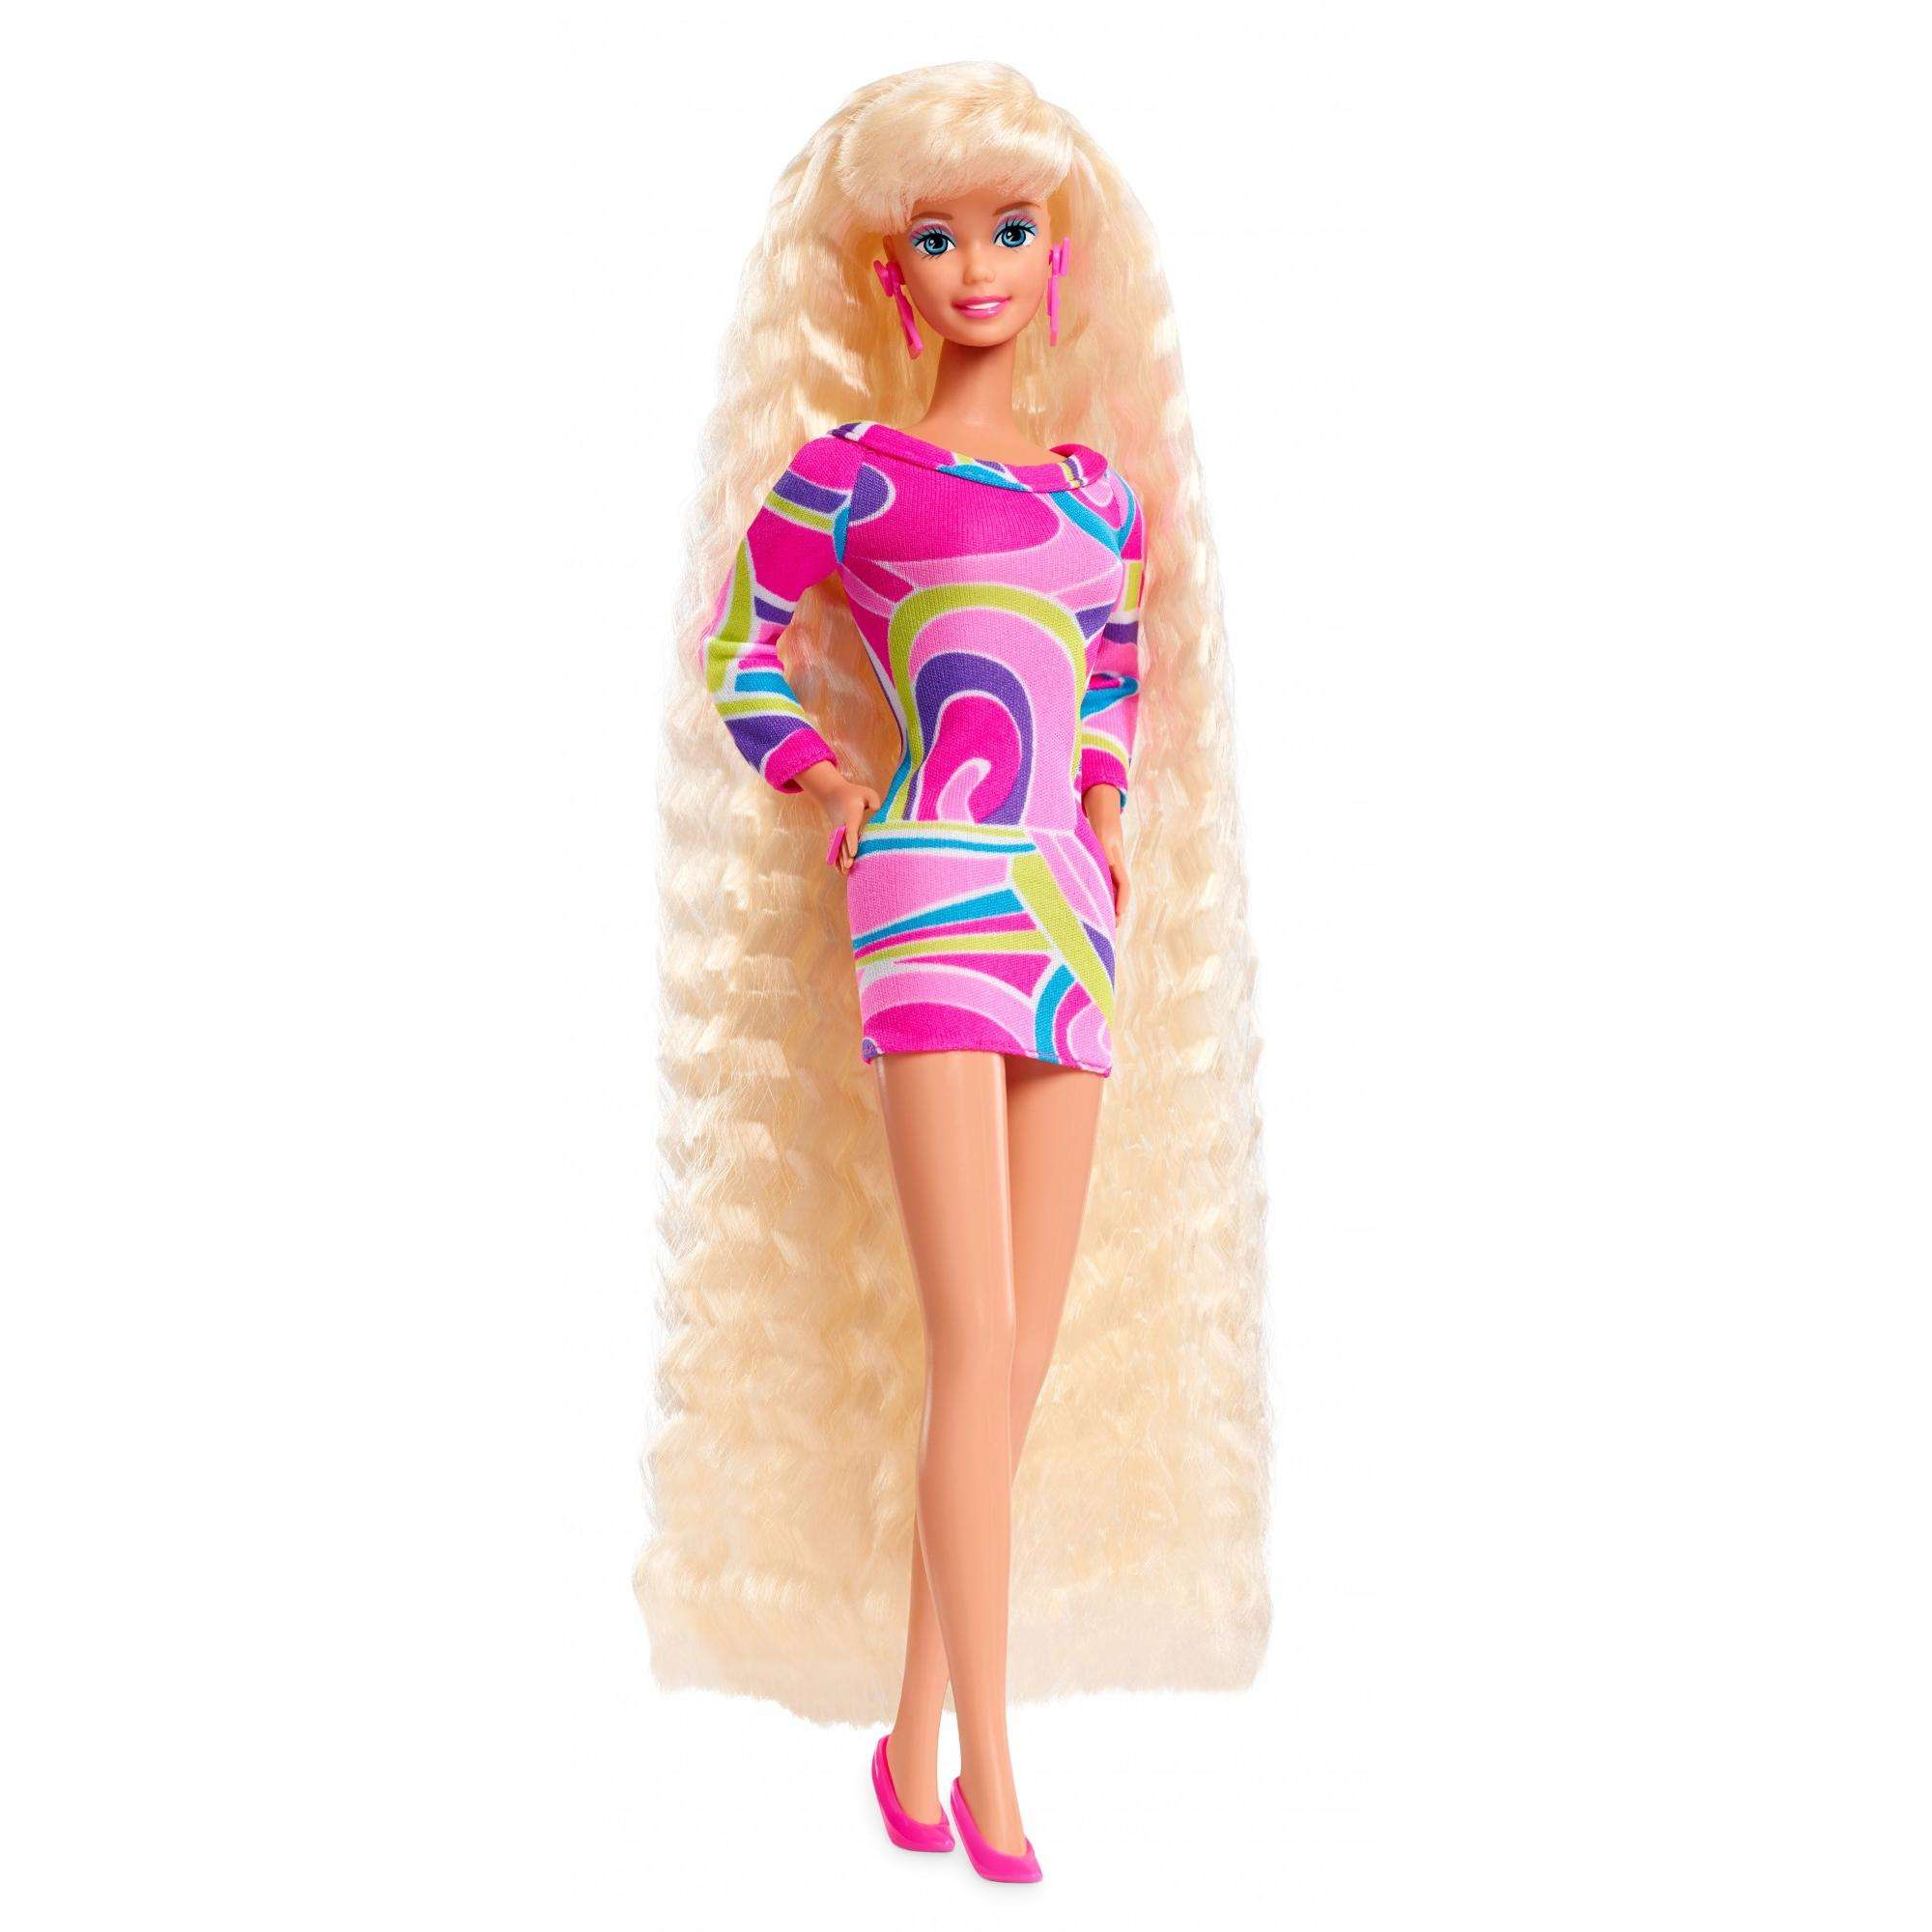 Barbie Totally Hair 25th Anniversary 90s Barbie Doll with Crimped Hair by Barbie